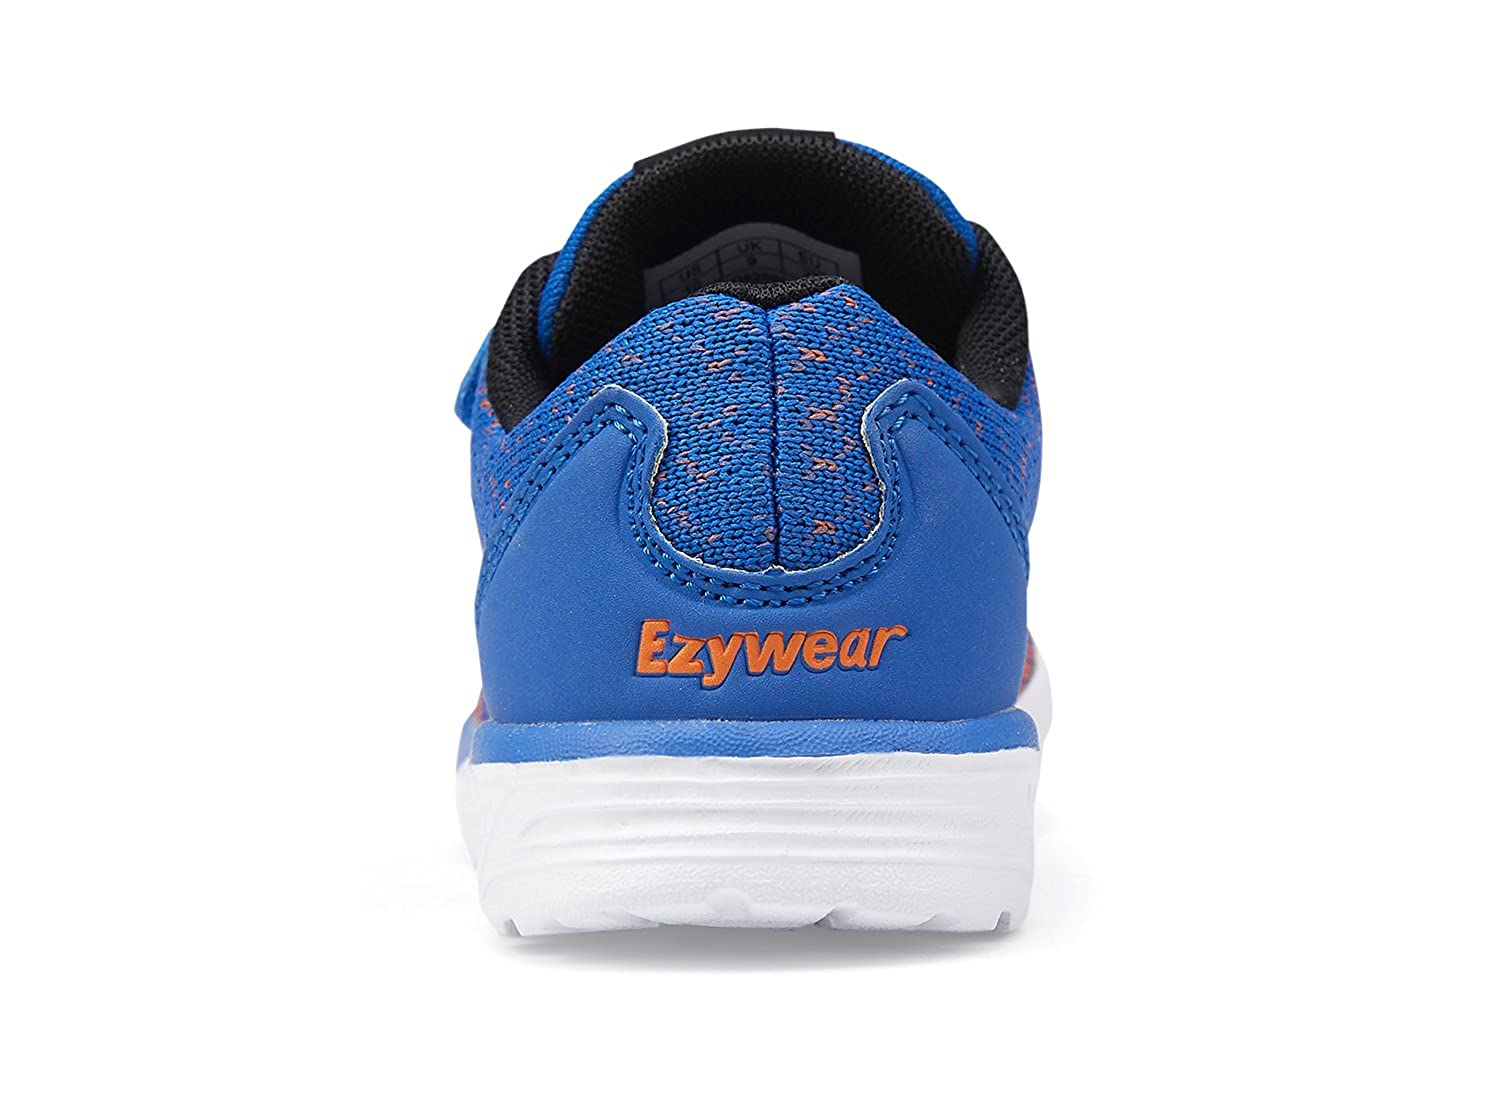 ALLY BELLY Toddler Double Strap Shoes Breathable Tennis Shoes for Boys Girls